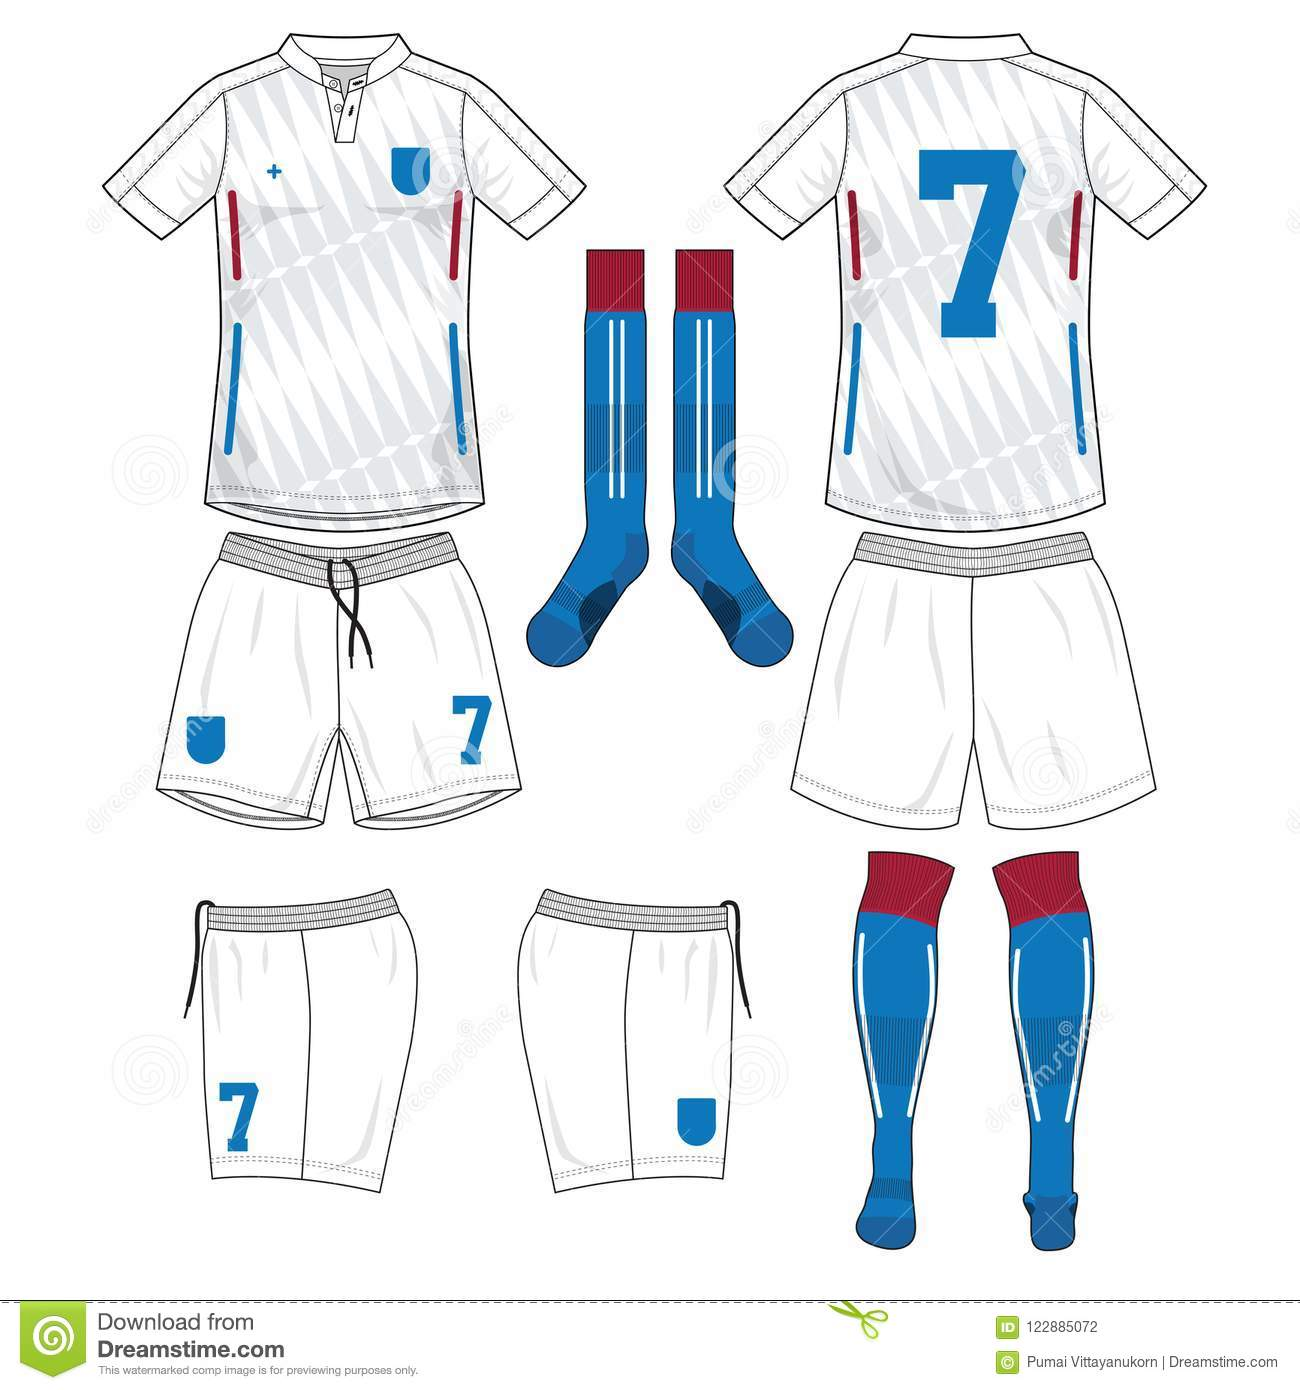 5ddf7684a Soccer jersey or football kit template design for football team. Front and  back view soccer uniform. Football t shirt with sock and short mock up.